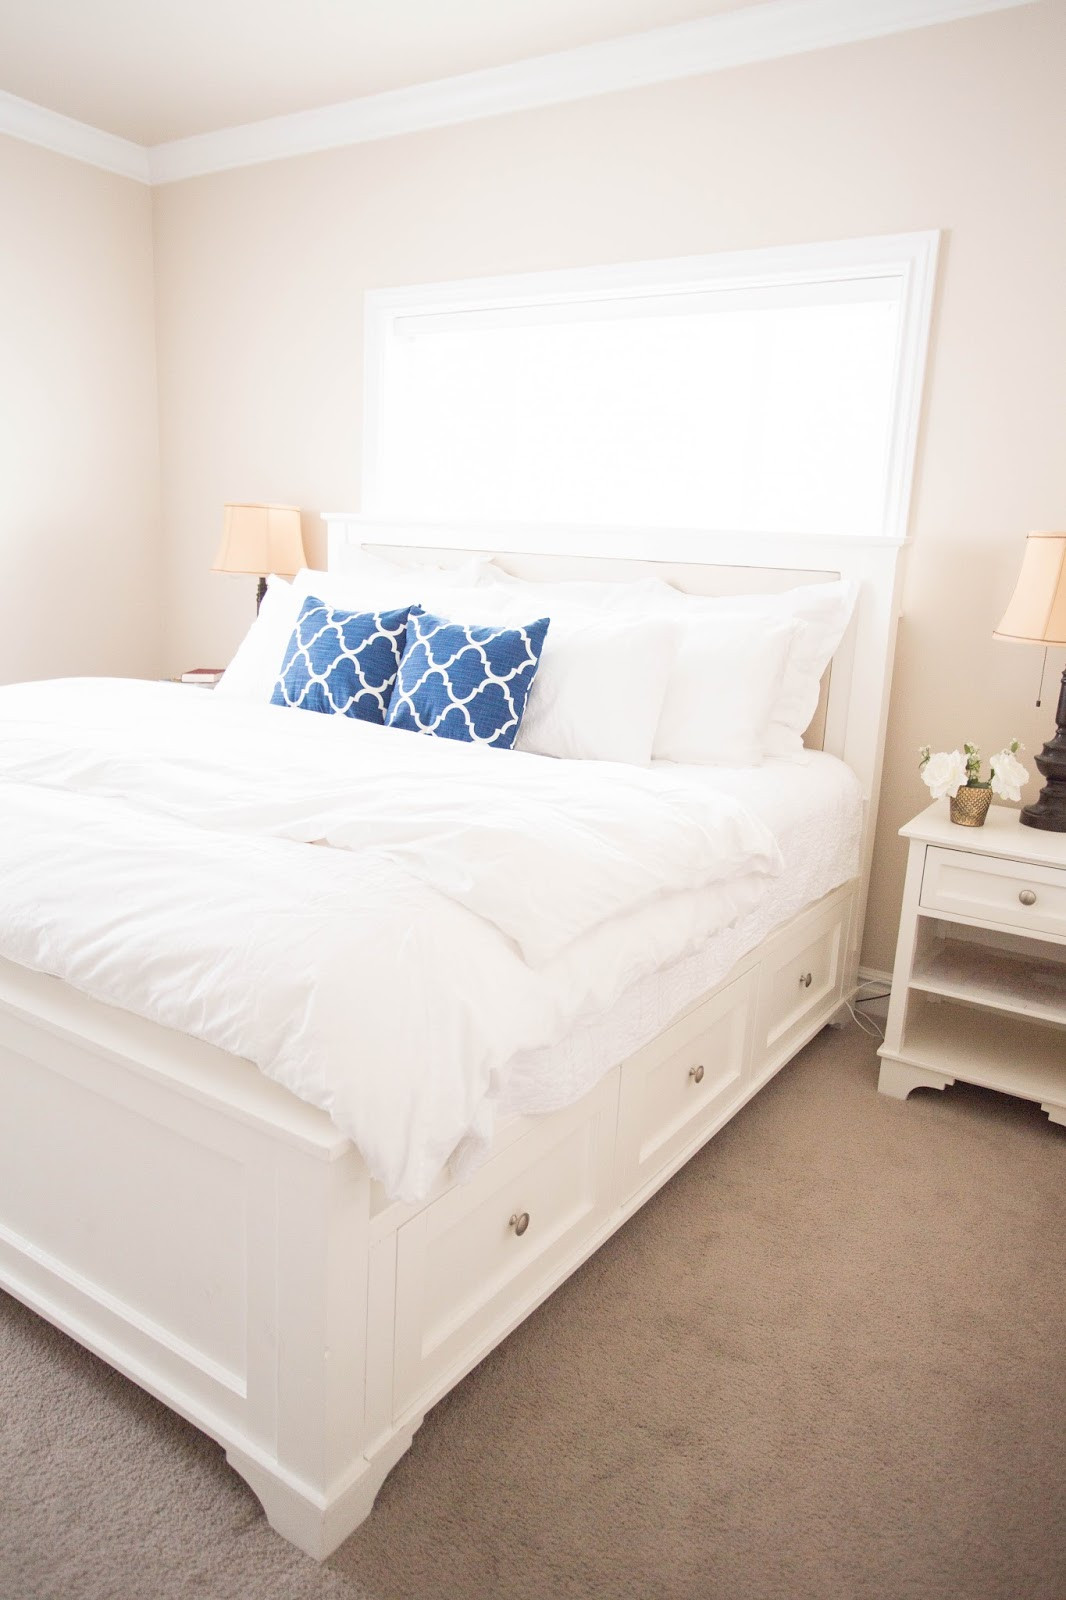 Best ideas about DIY King Beds . Save or Pin do it yourself divas DIY King Size Storage Bed Part 1 Now.